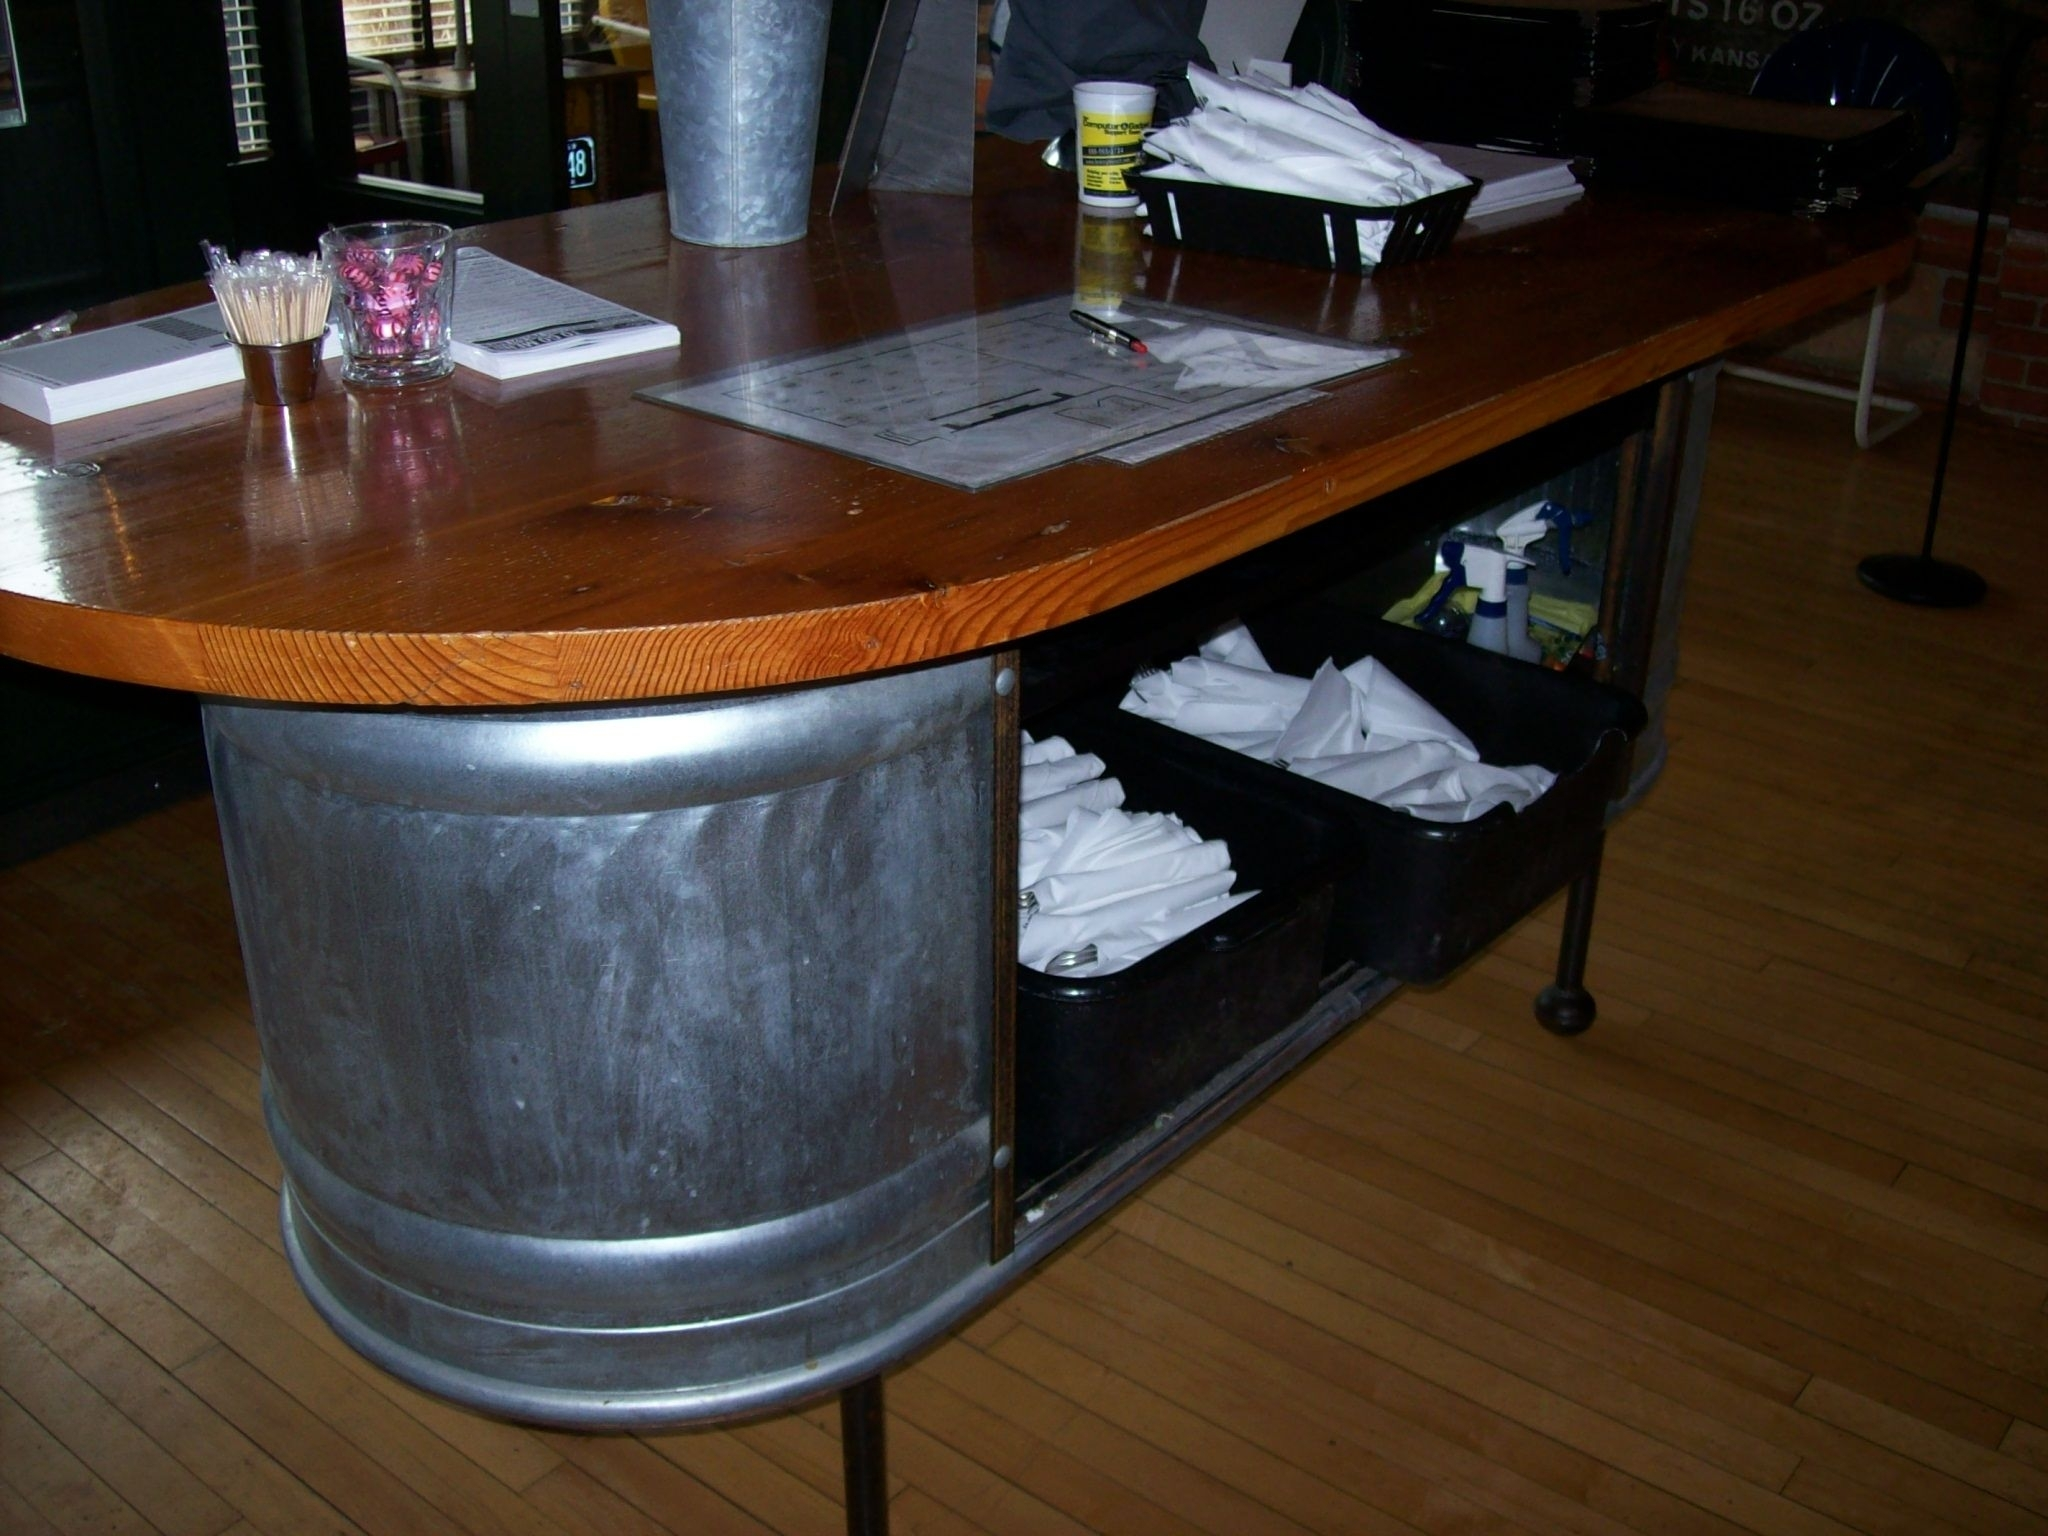 Great Way To Create A Hostess Station Or Check Out Area | Retail Intended For Recent Market 6 Piece Dining Sets With Host And Side Chairs (View 20 of 20)